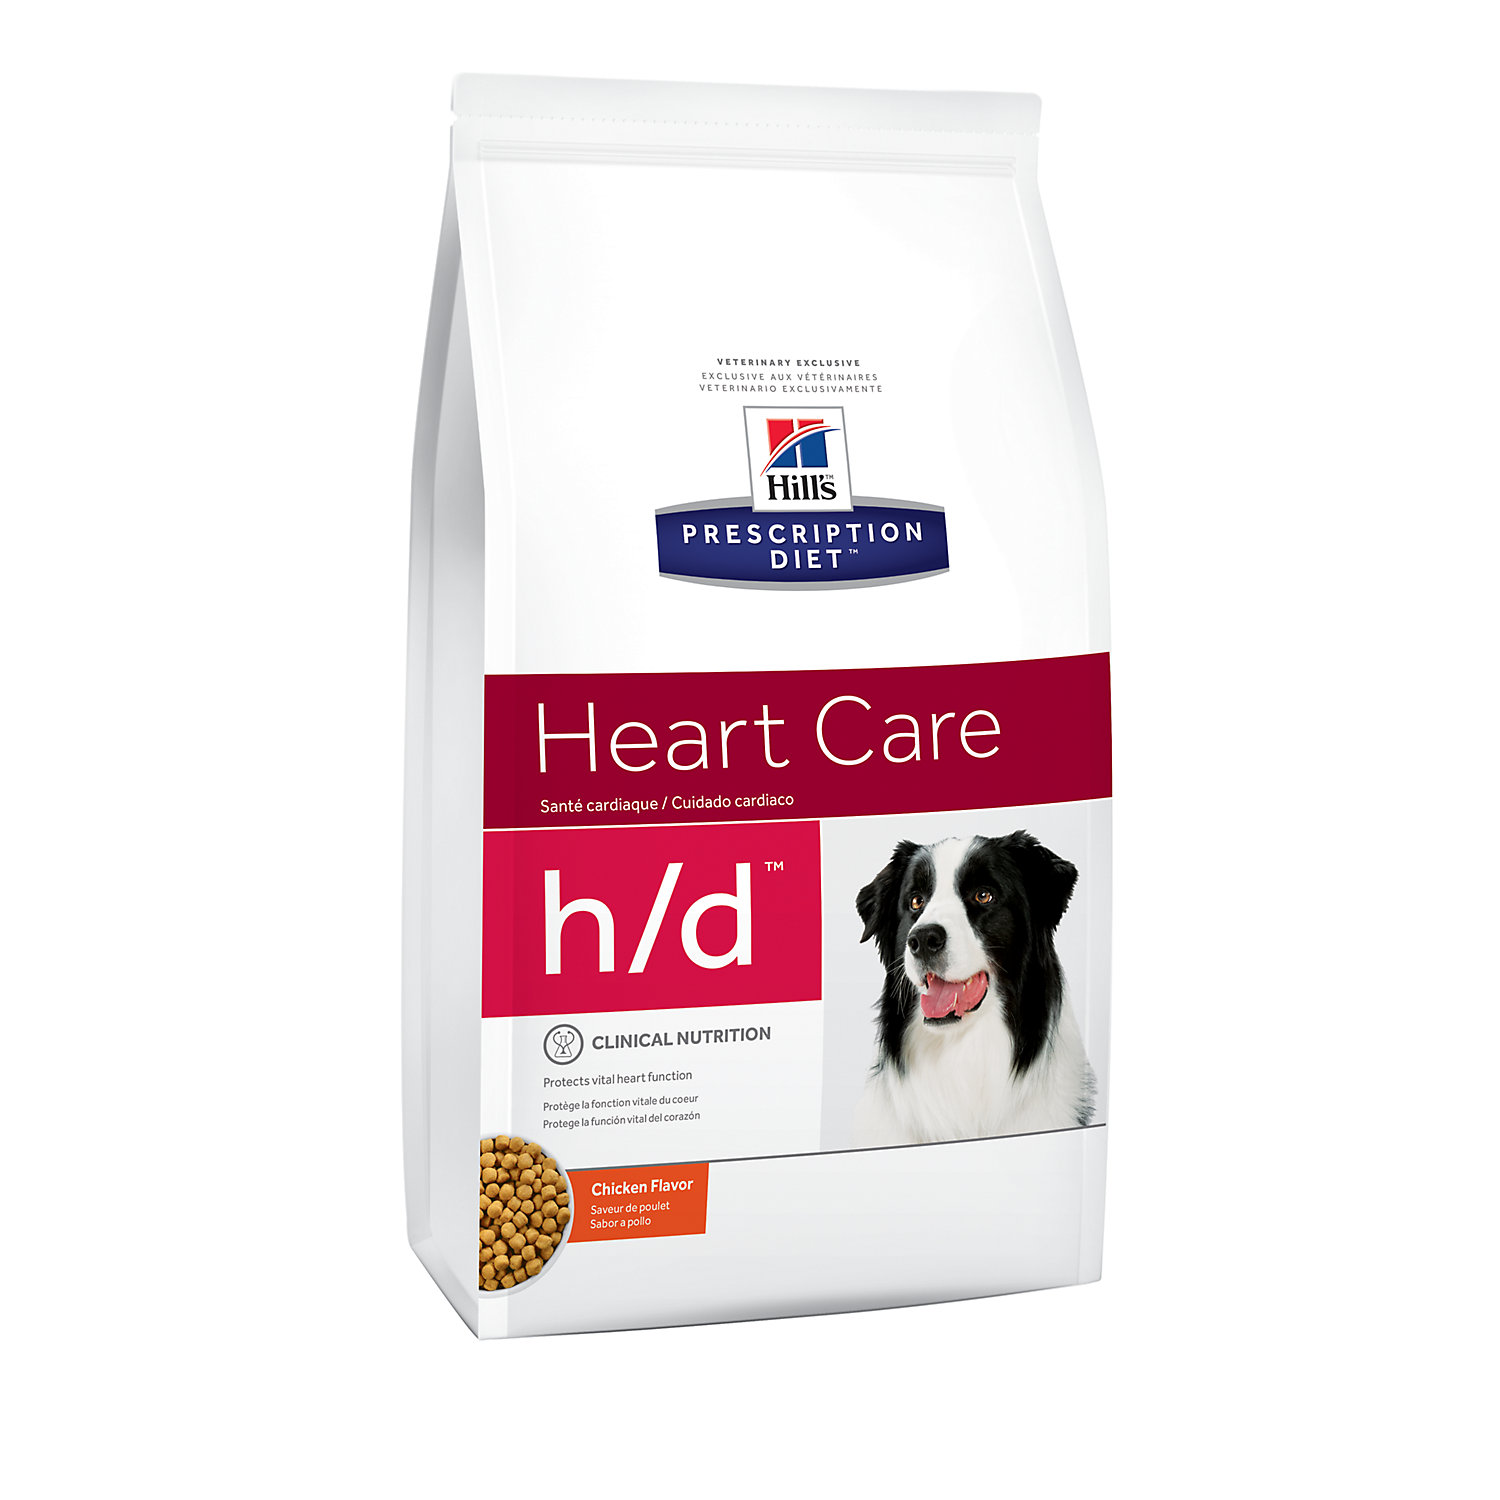 Hills Prescription Diet hd Heart Care Chicken Flavor Dry Dog Food